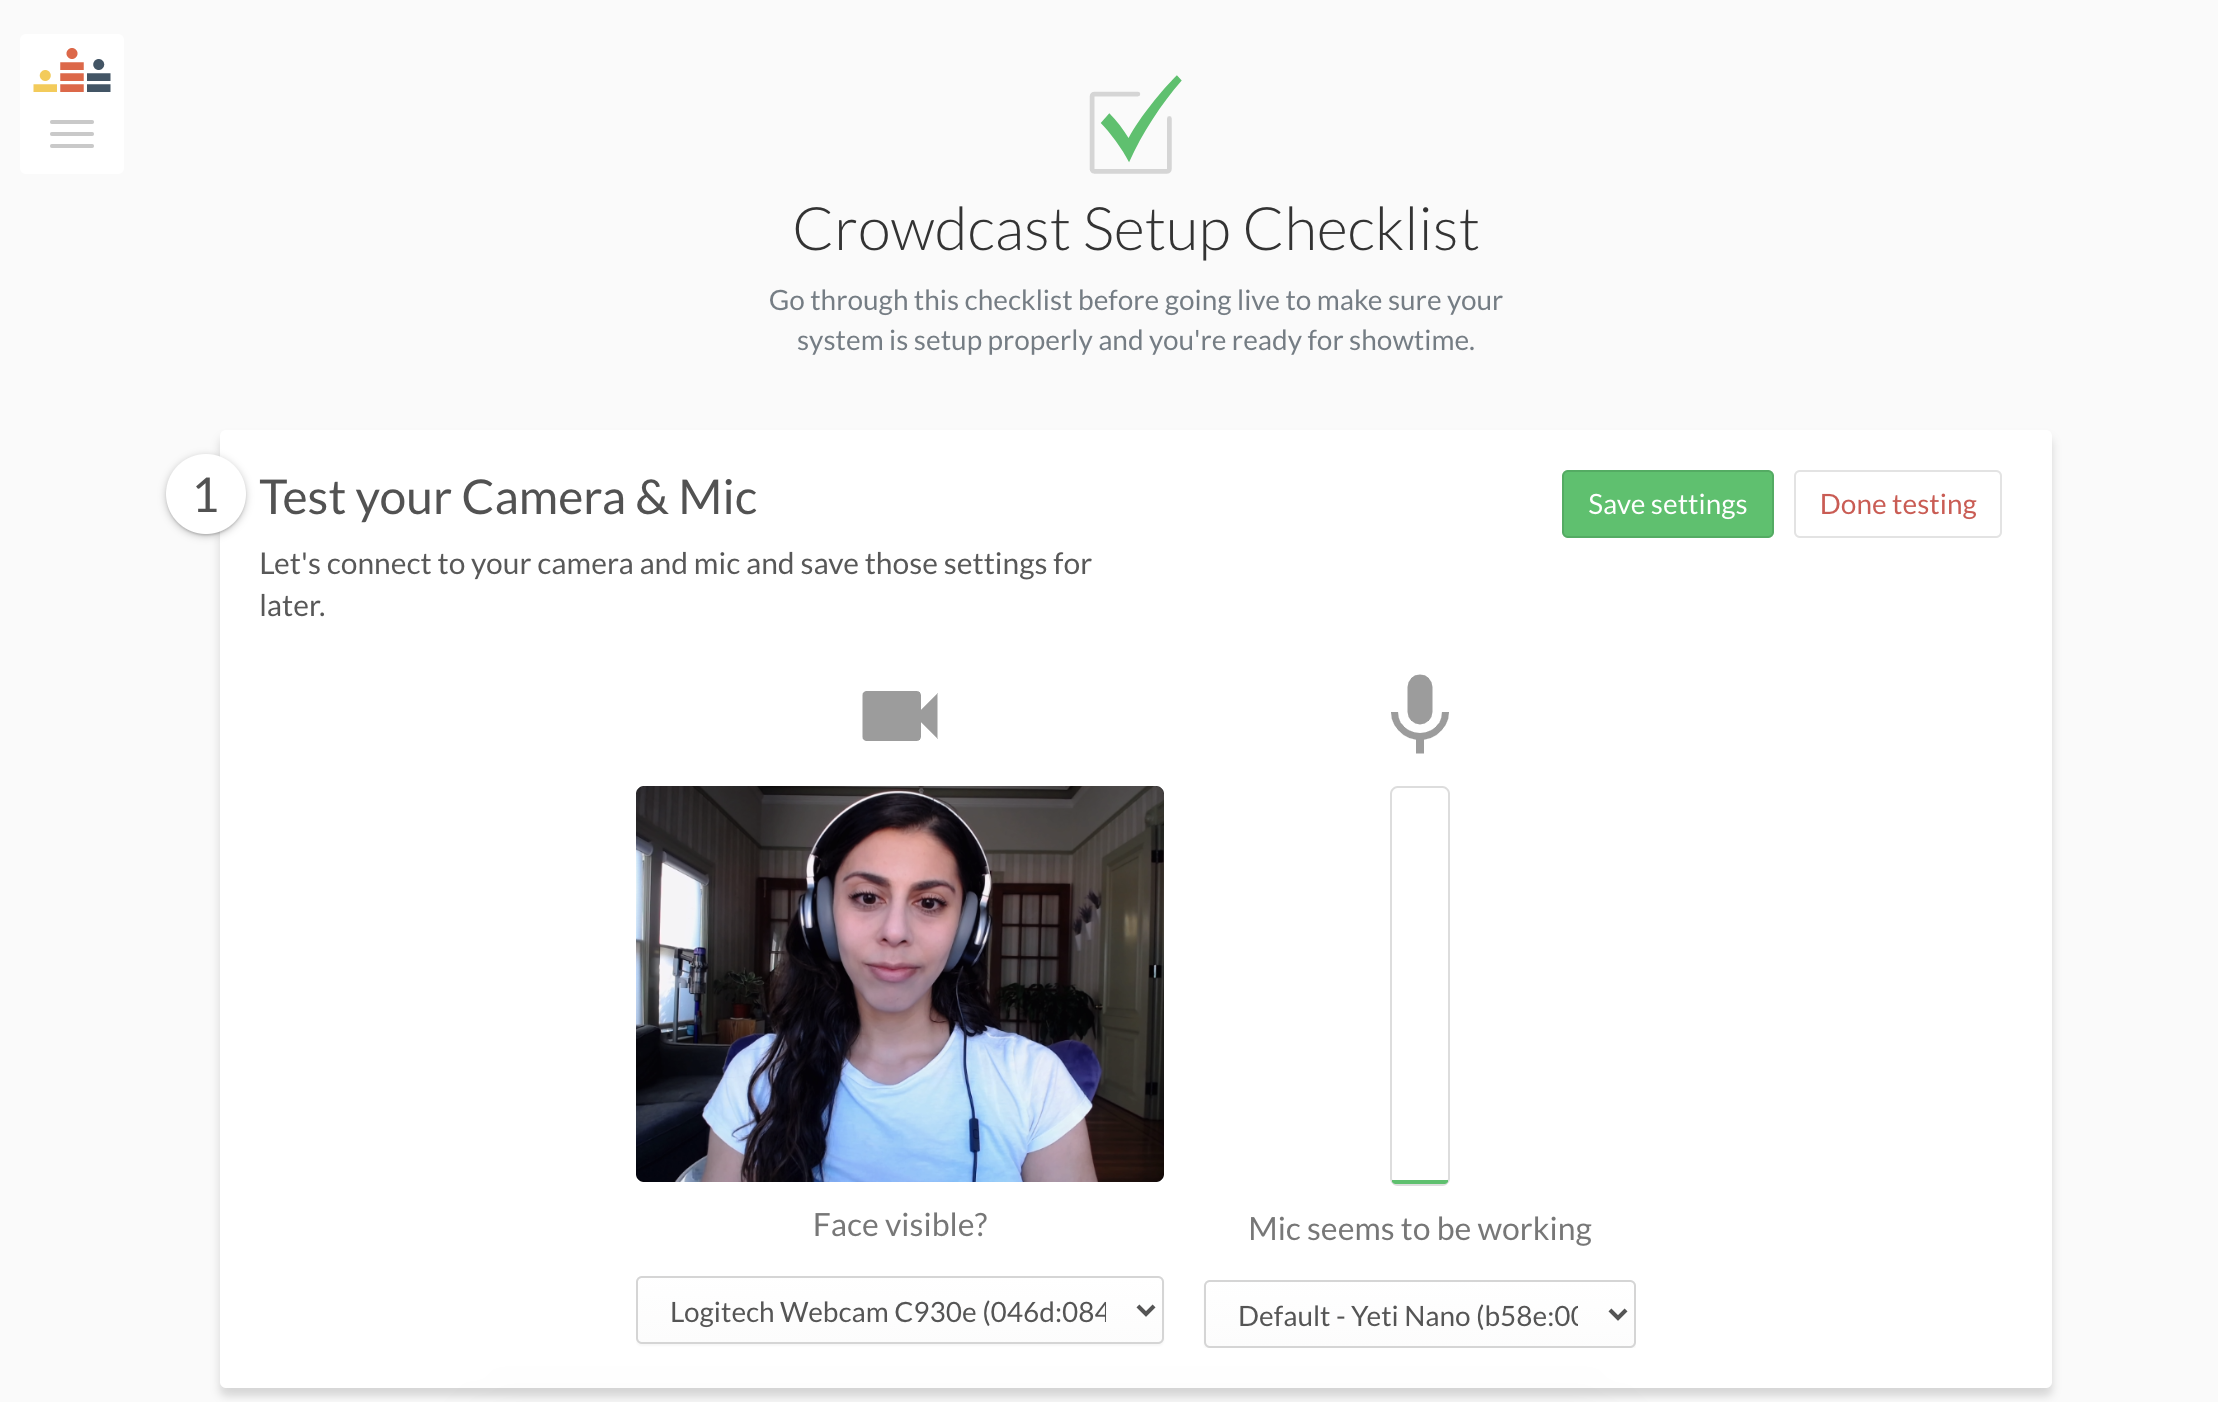 The setup page where you test your camera and mic